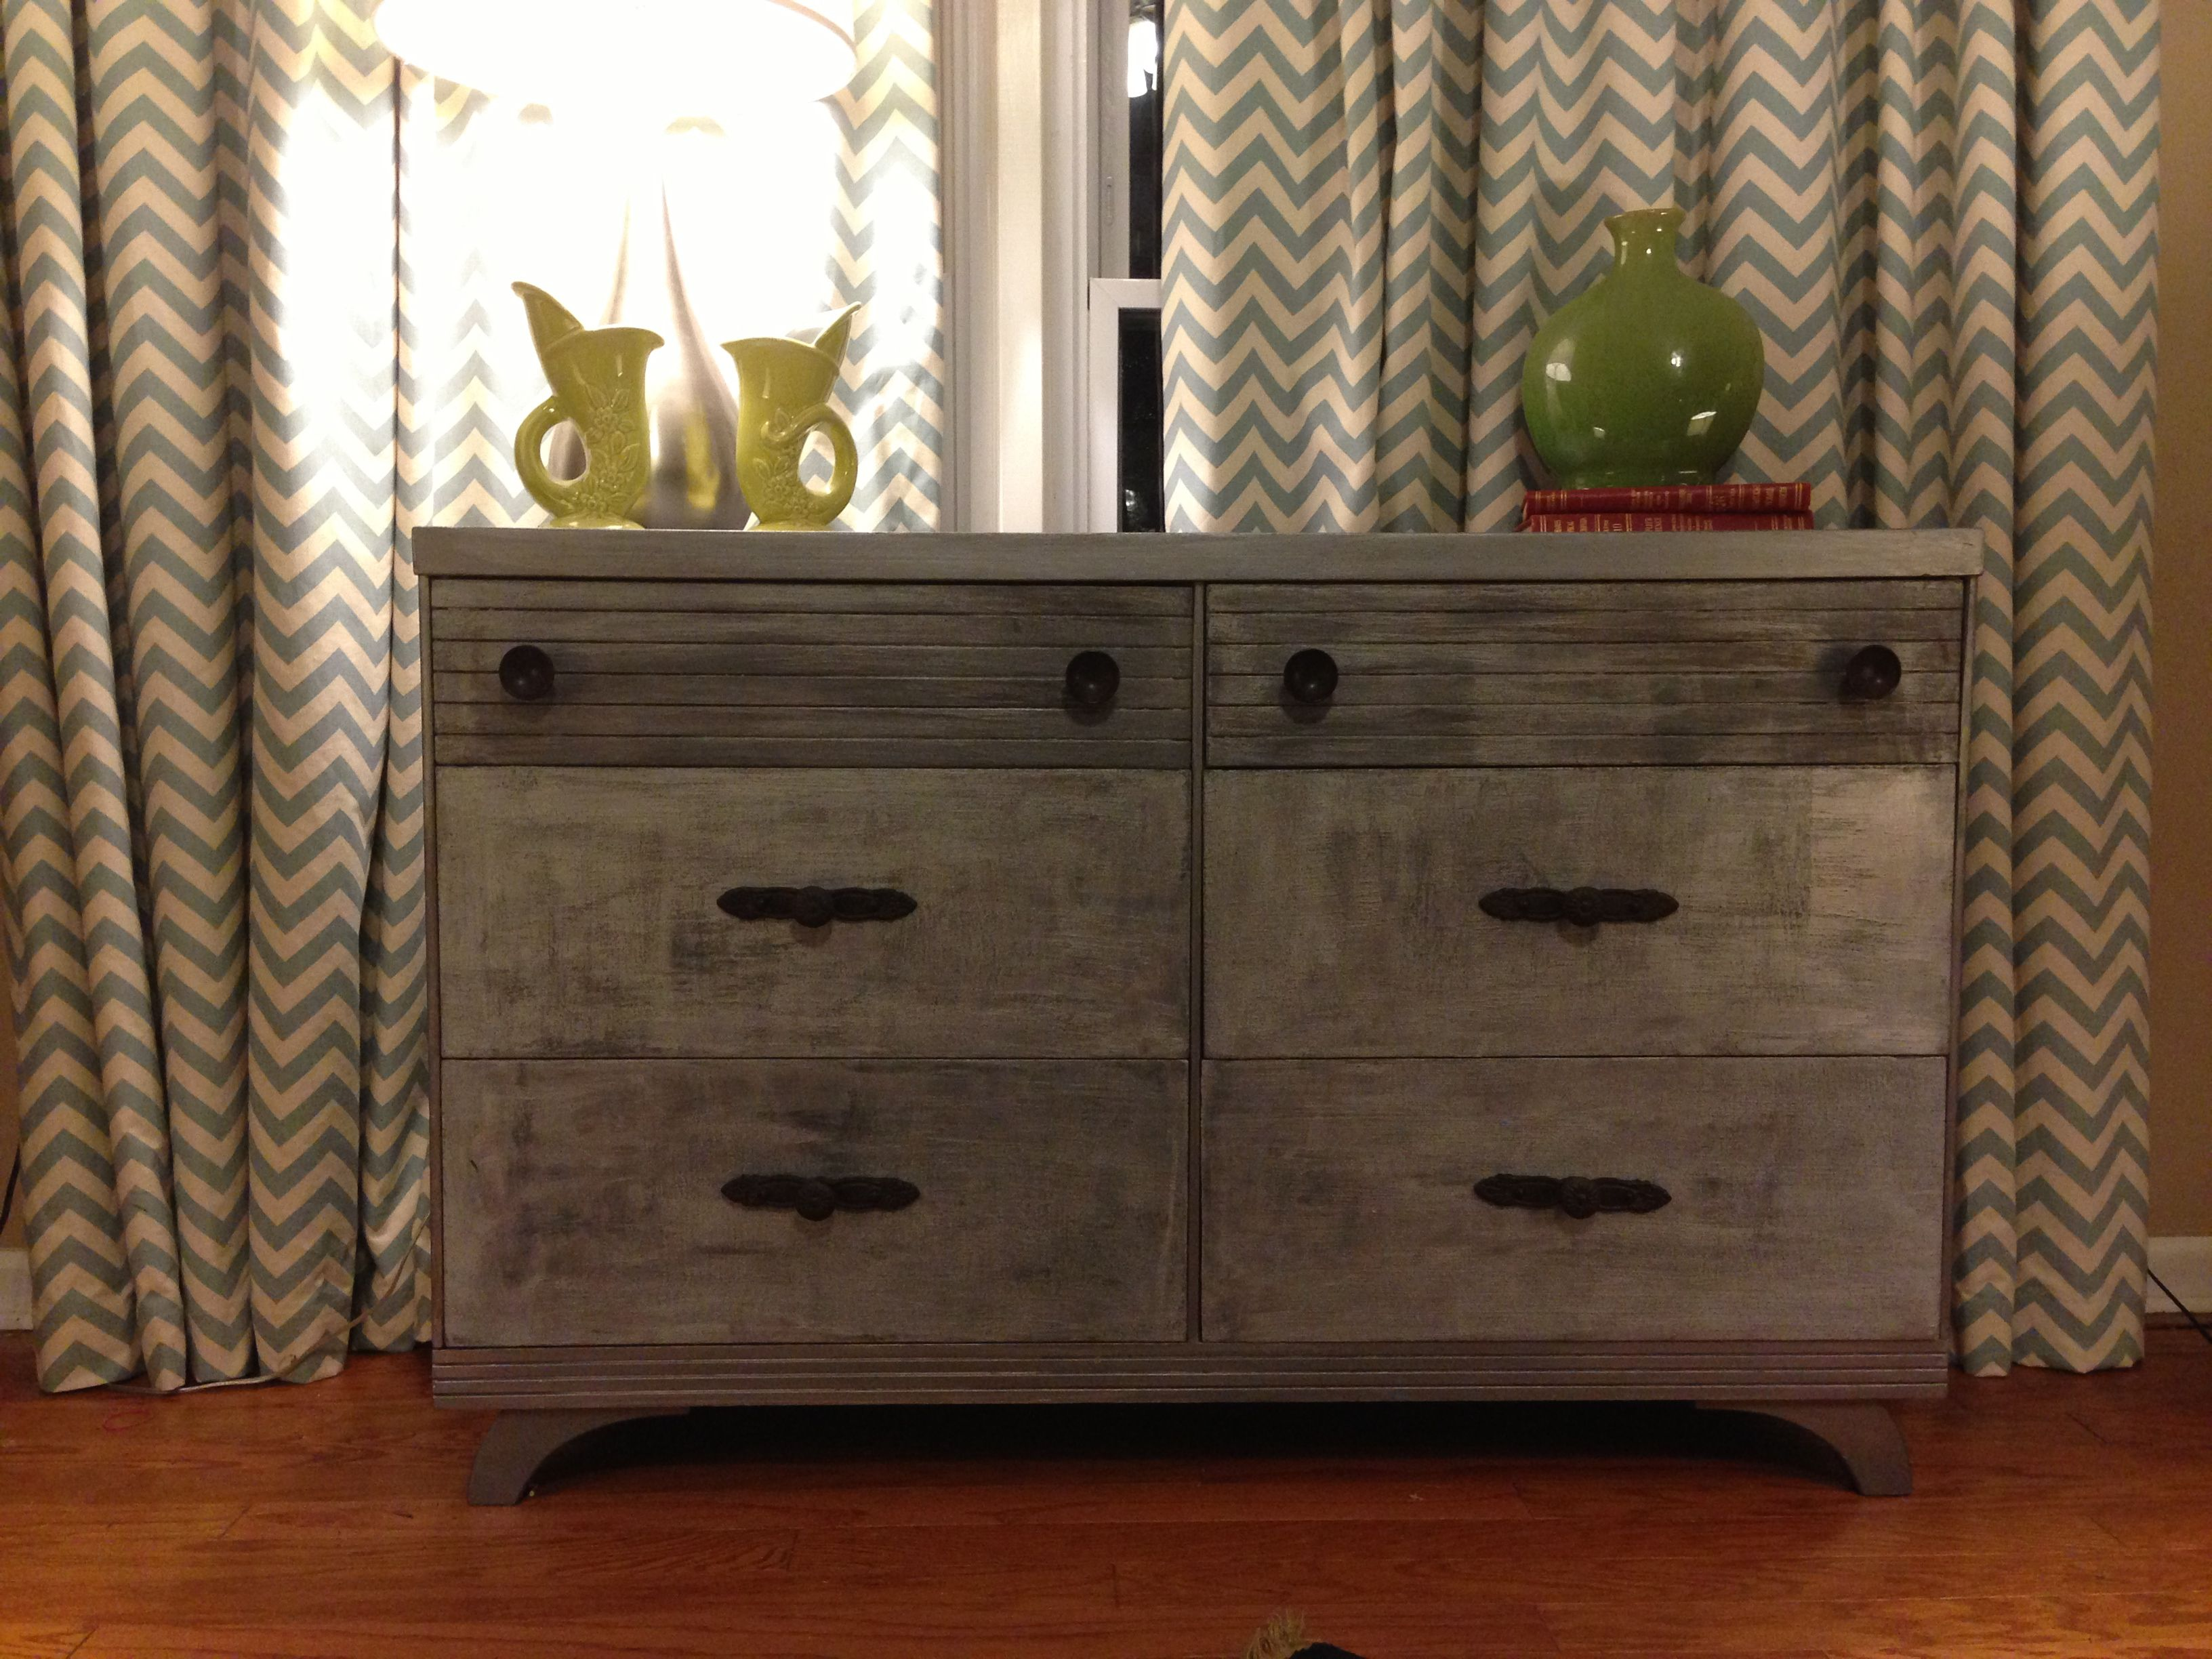 Martha Stewart textured metallic paint and glaze Dressers